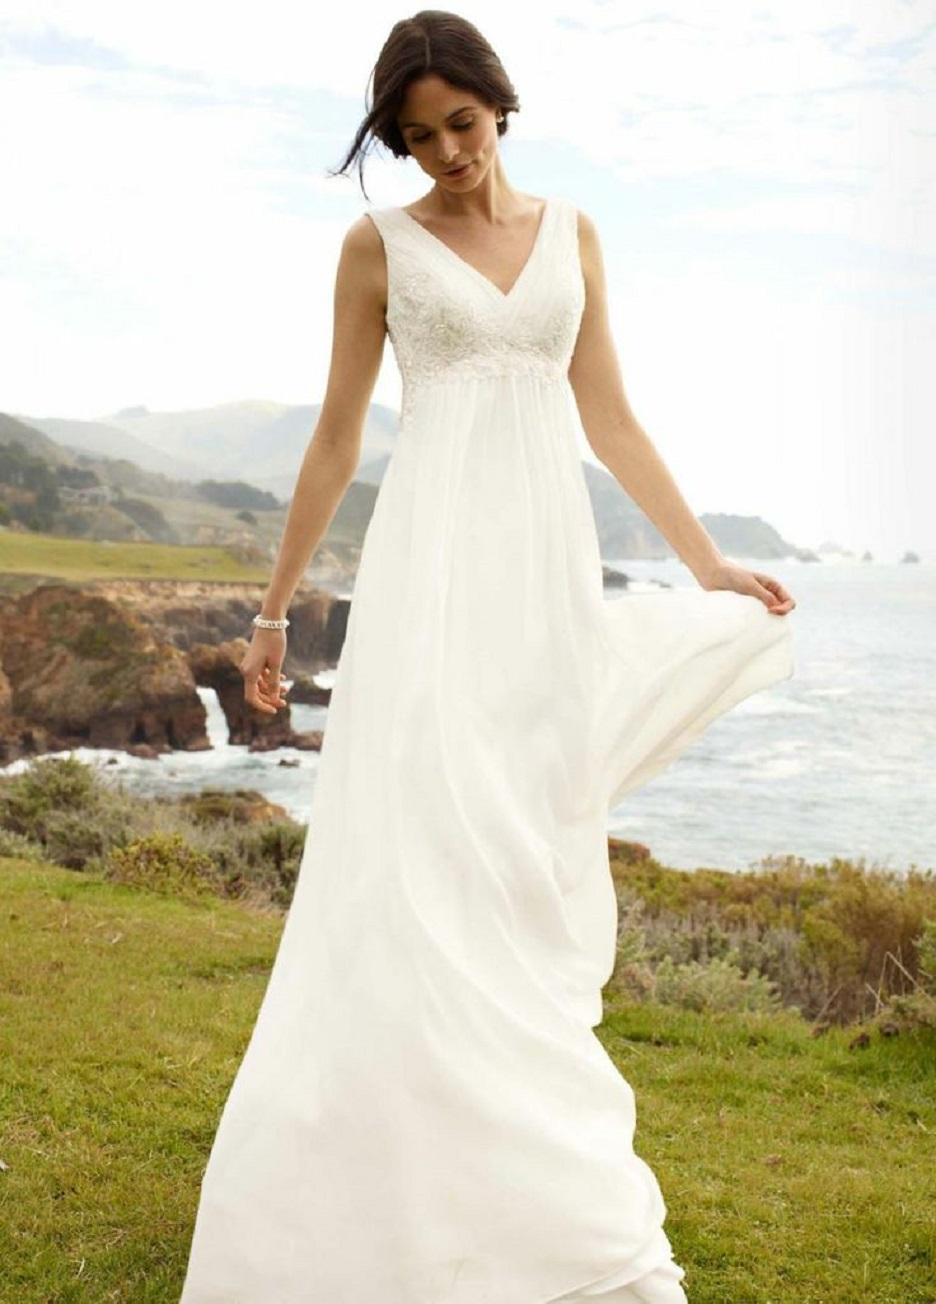 Simple White Casual Beach Wedding Dresses